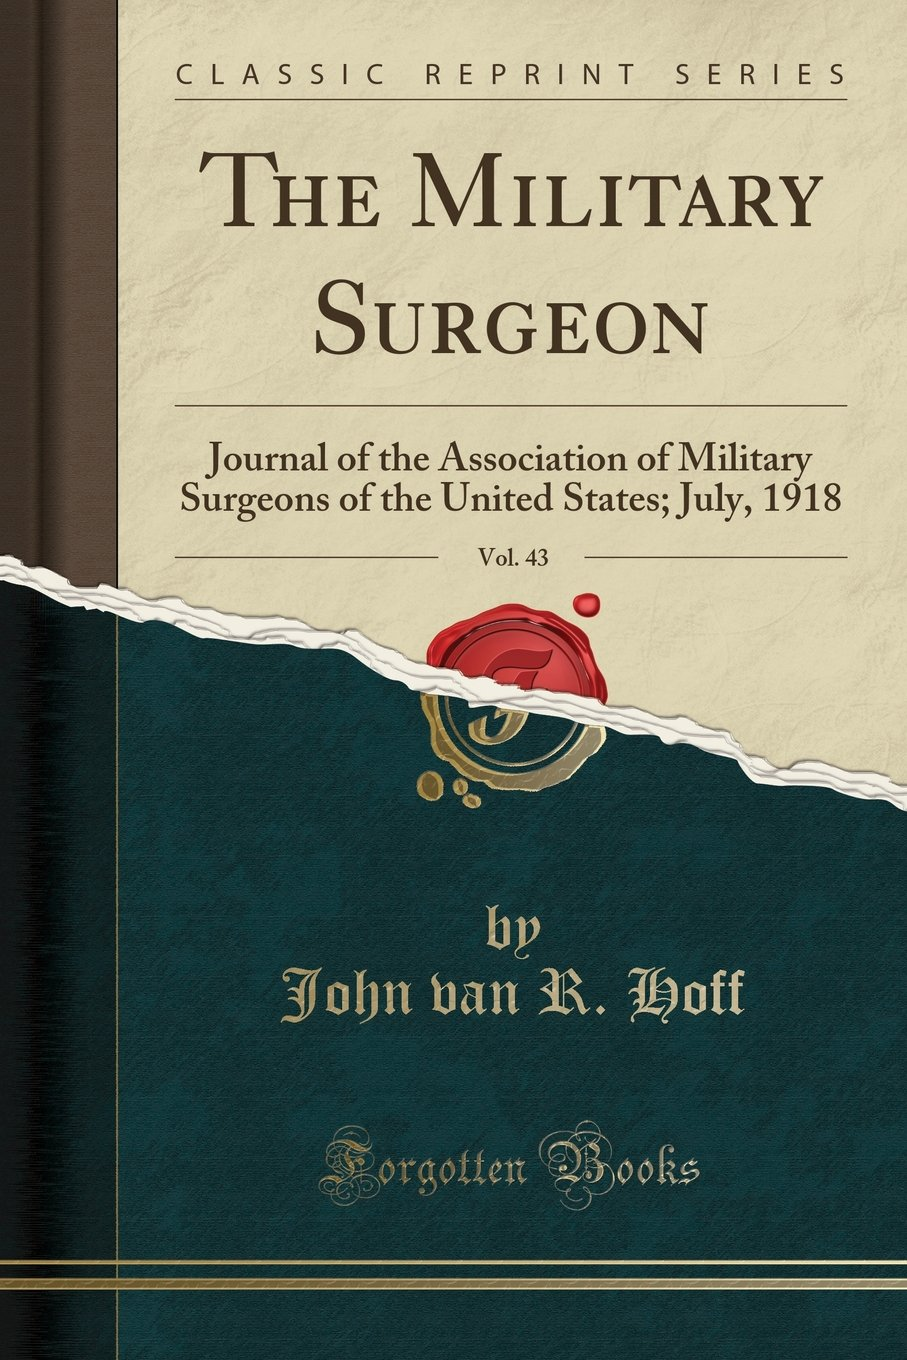 Download The Military Surgeon, Vol. 43: Journal of the Association of Military Surgeons of the United States; July, 1918 (Classic Reprint) ebook